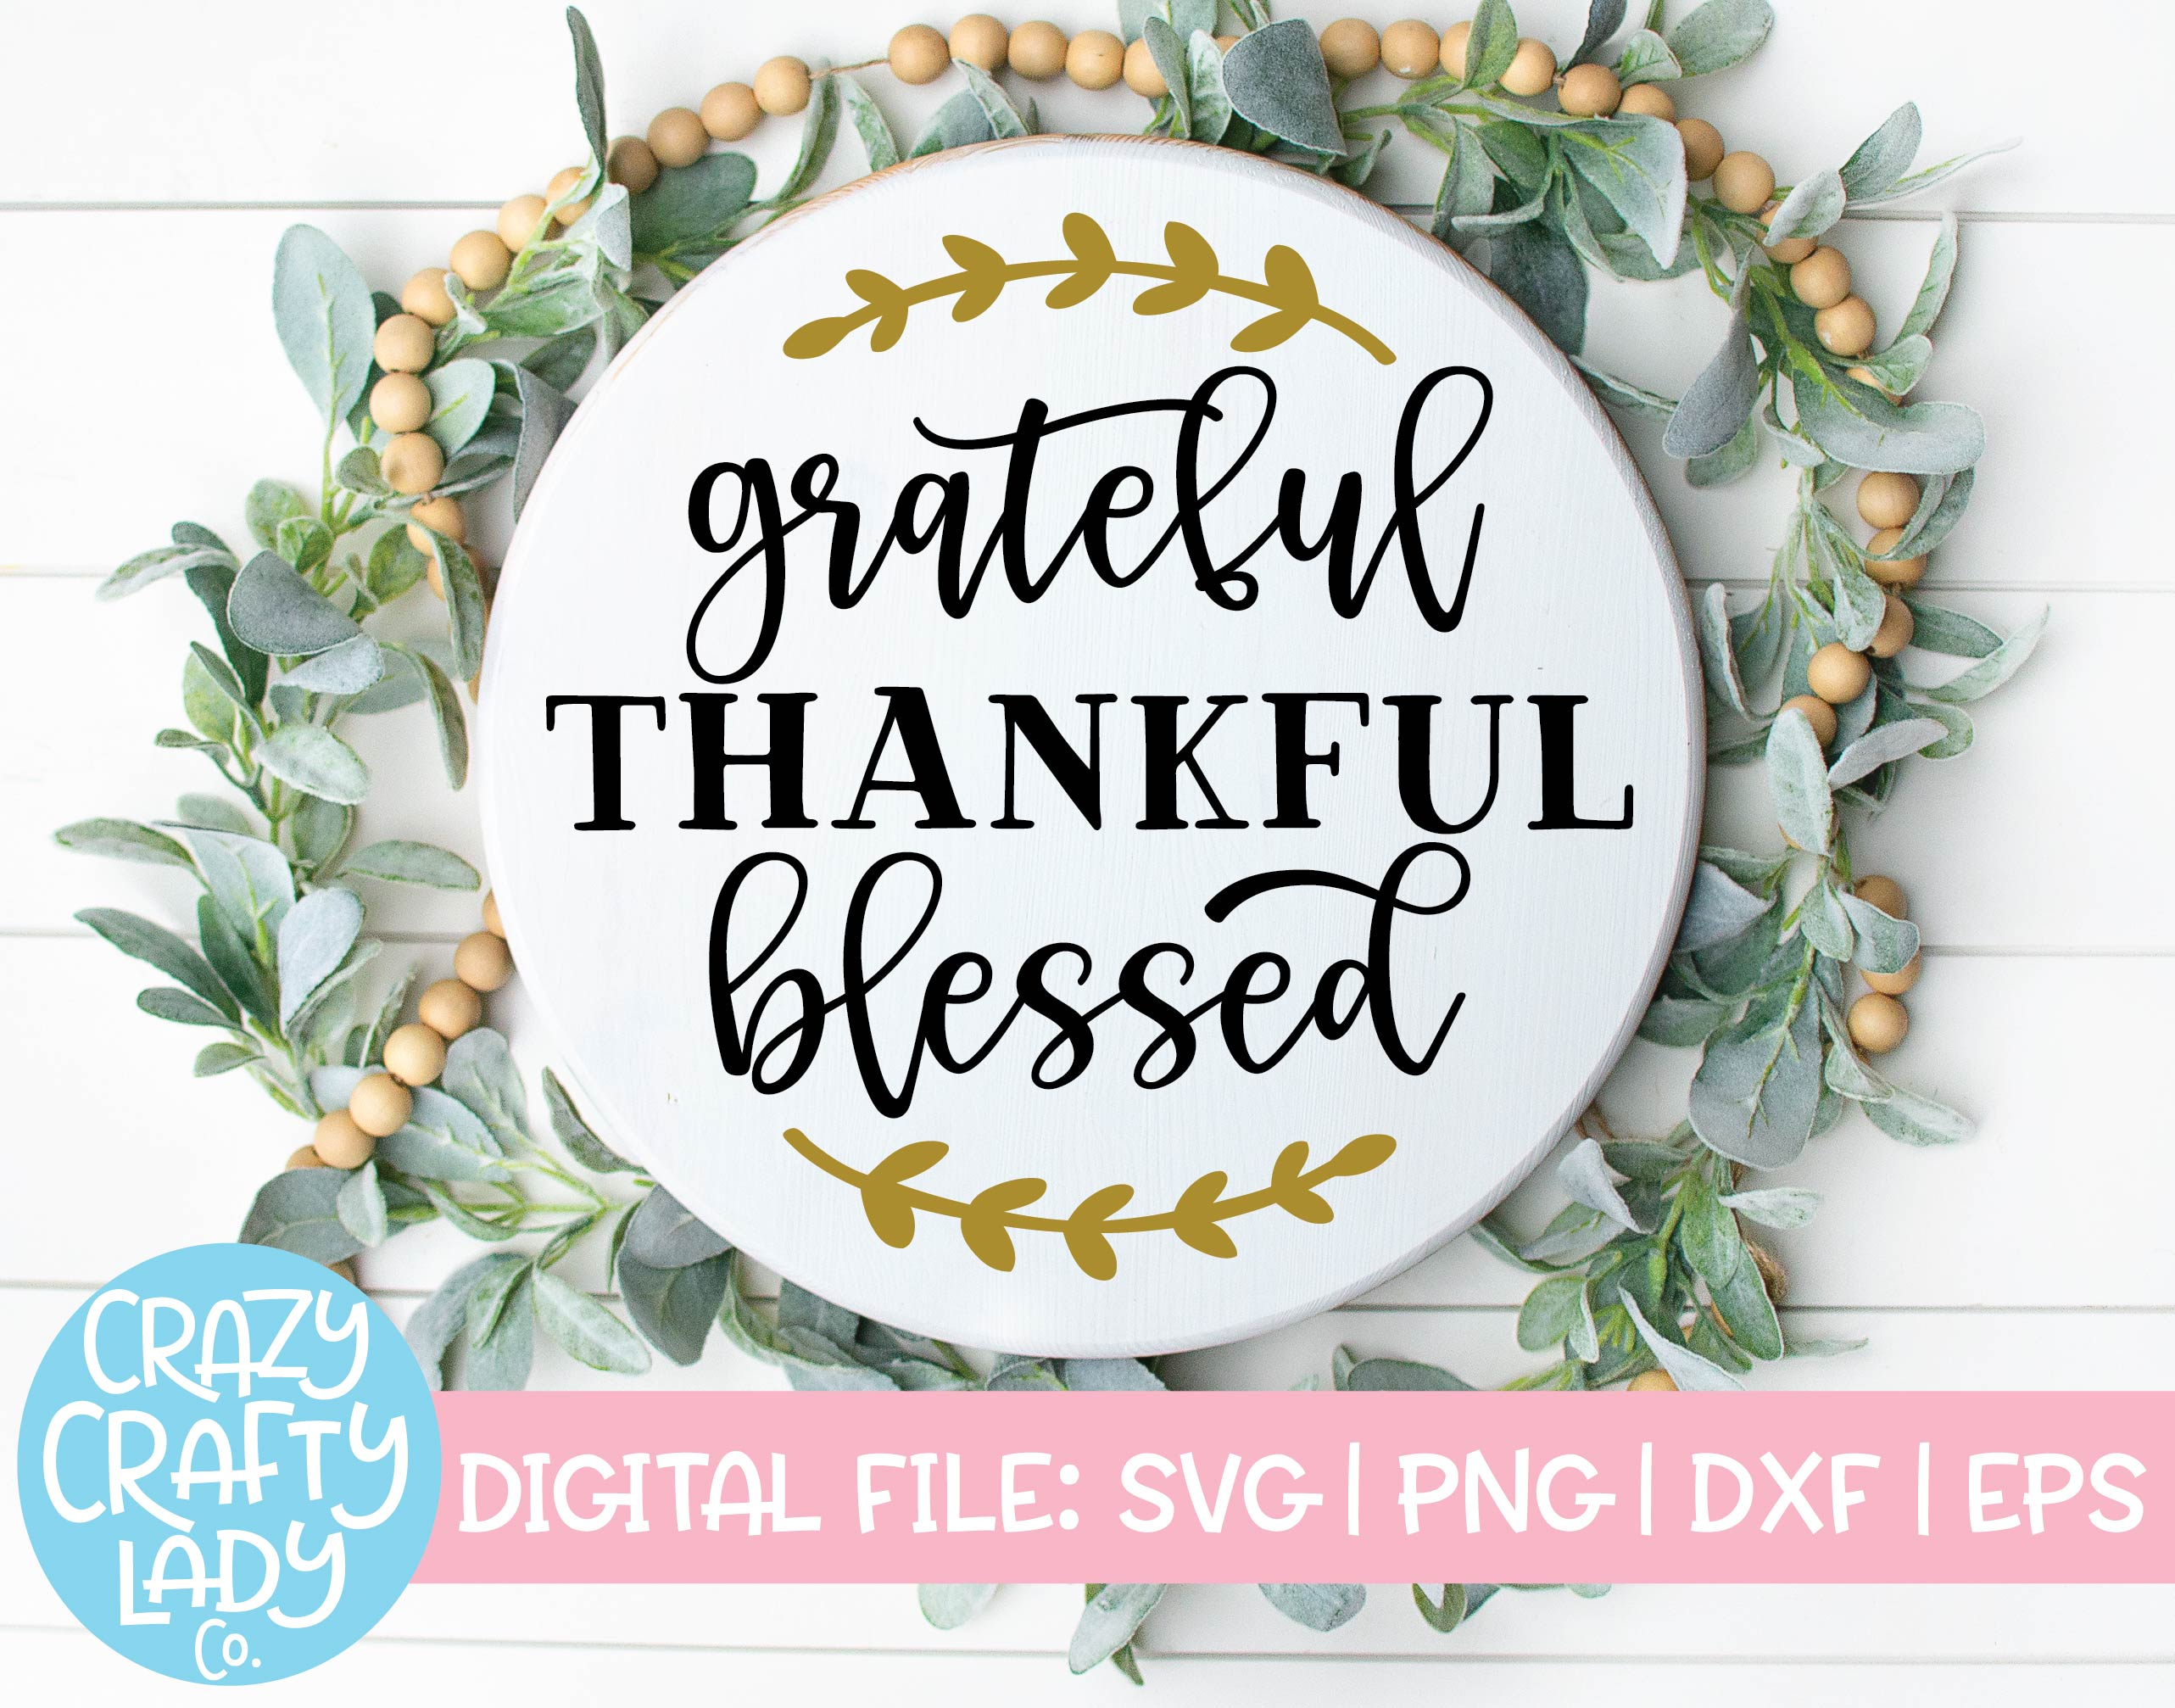 Grateful Thankful Blessed Svg Cut File Crazy Crafty Lady Co